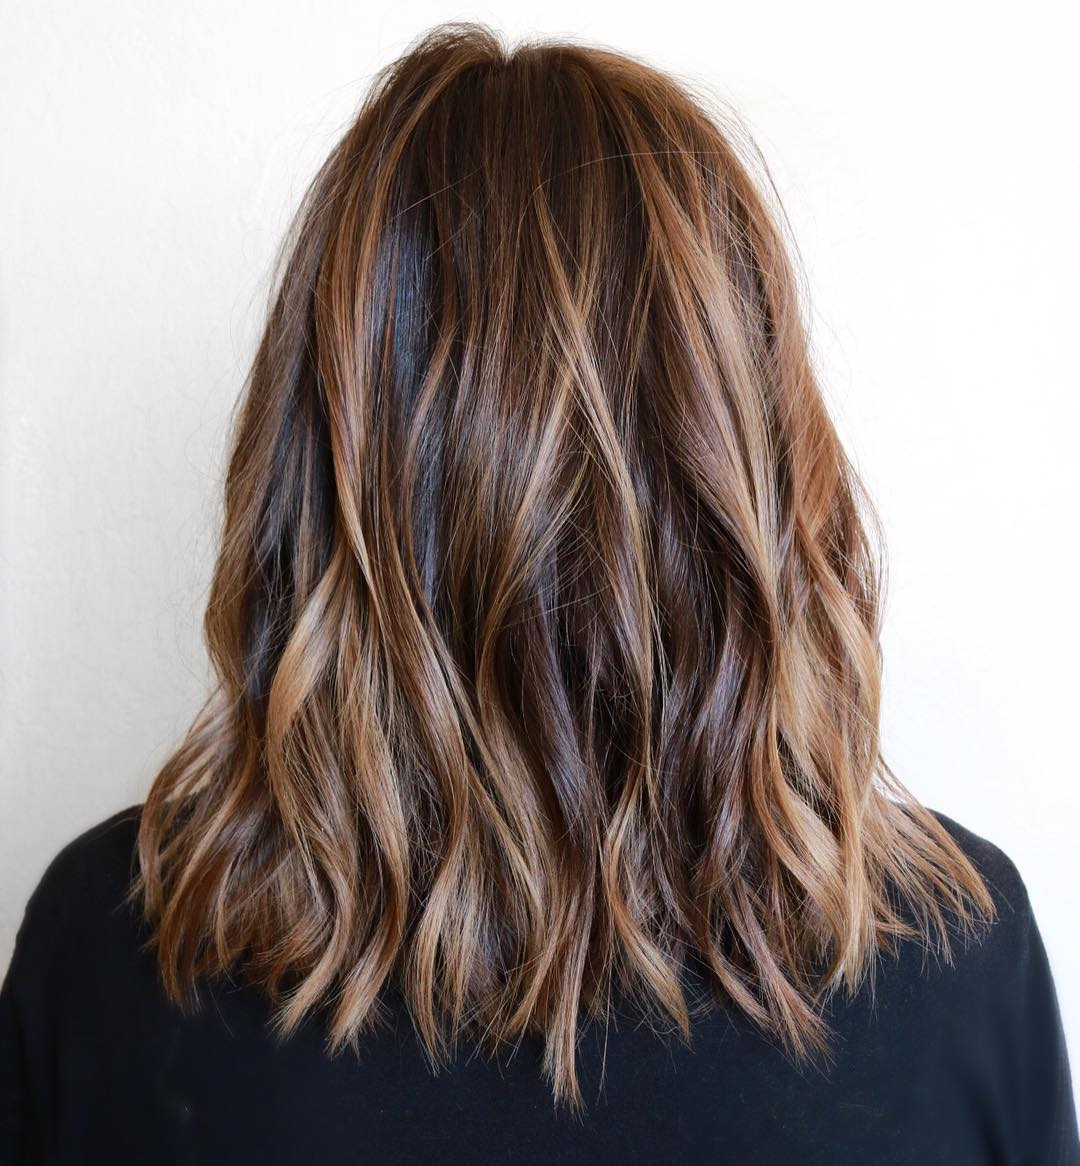 50 dark brown hair with highlights ideas for 2019 - hair adviser